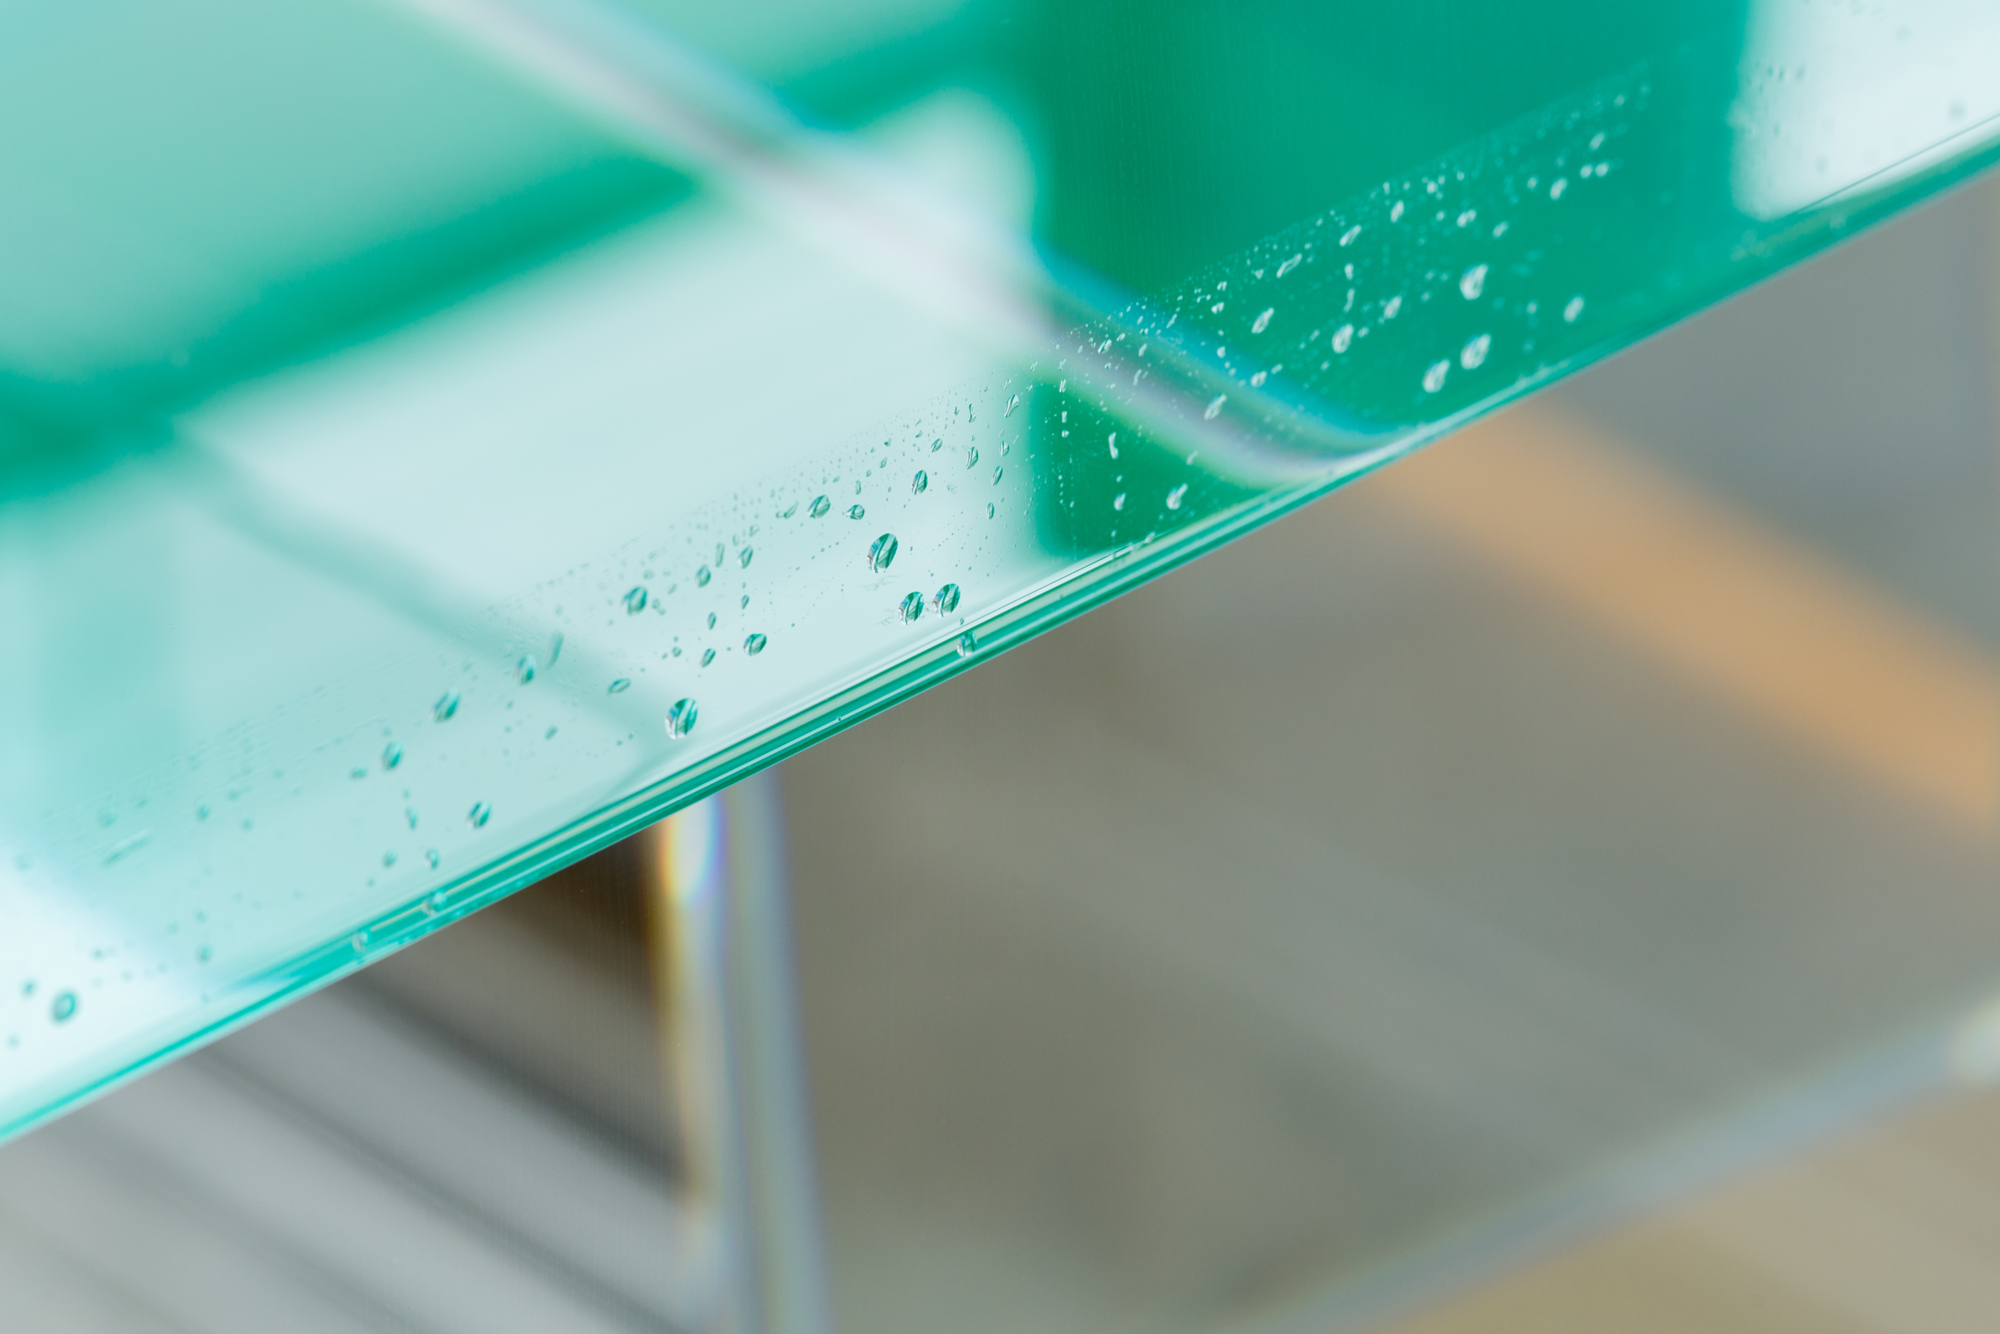 A glass cube filled with green paraffin oil